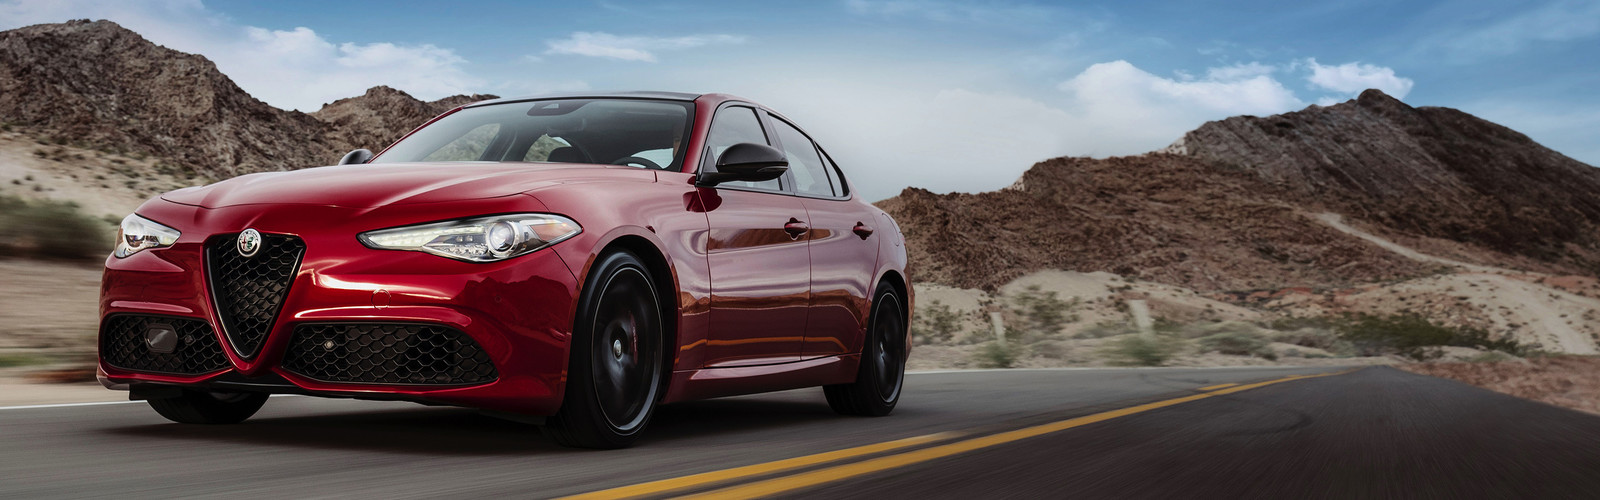 Front view of the red 2019 Alfa Romeo Giulia driving down a road in a desert